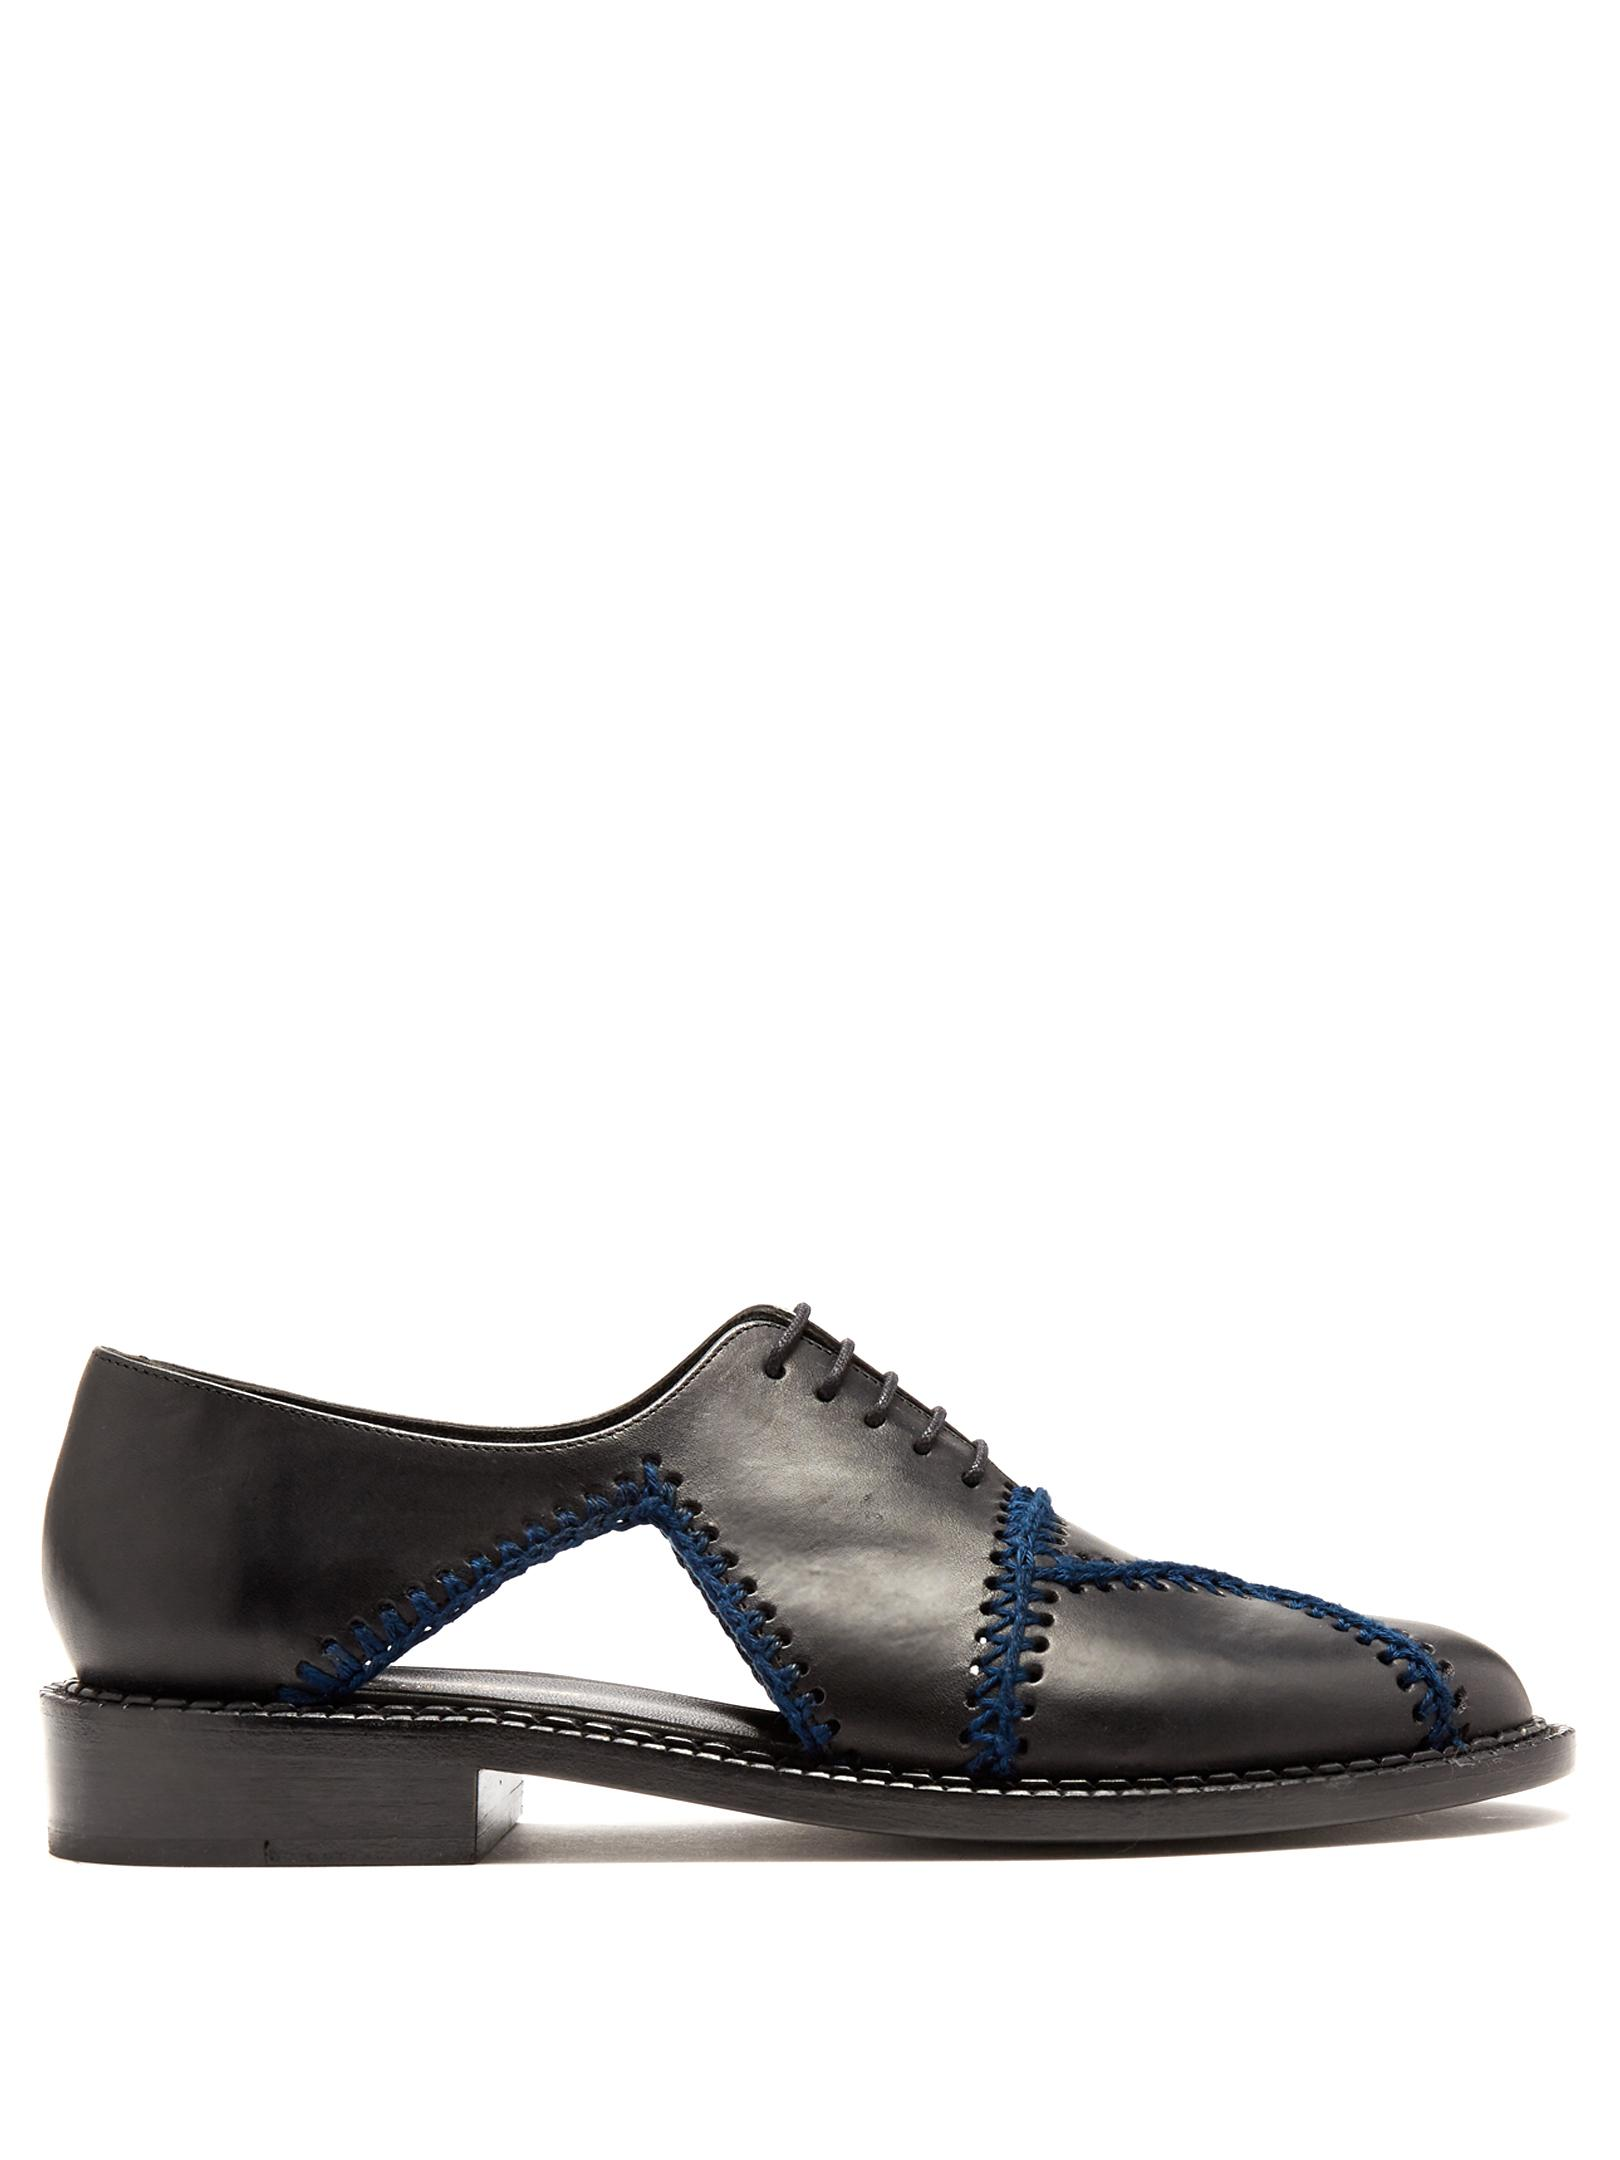 the latest a3614 2aa29 robert-clergerie-BLACK-NAVY-Jofre-Crochet-trimmed-Leather-Shoes.jpeg